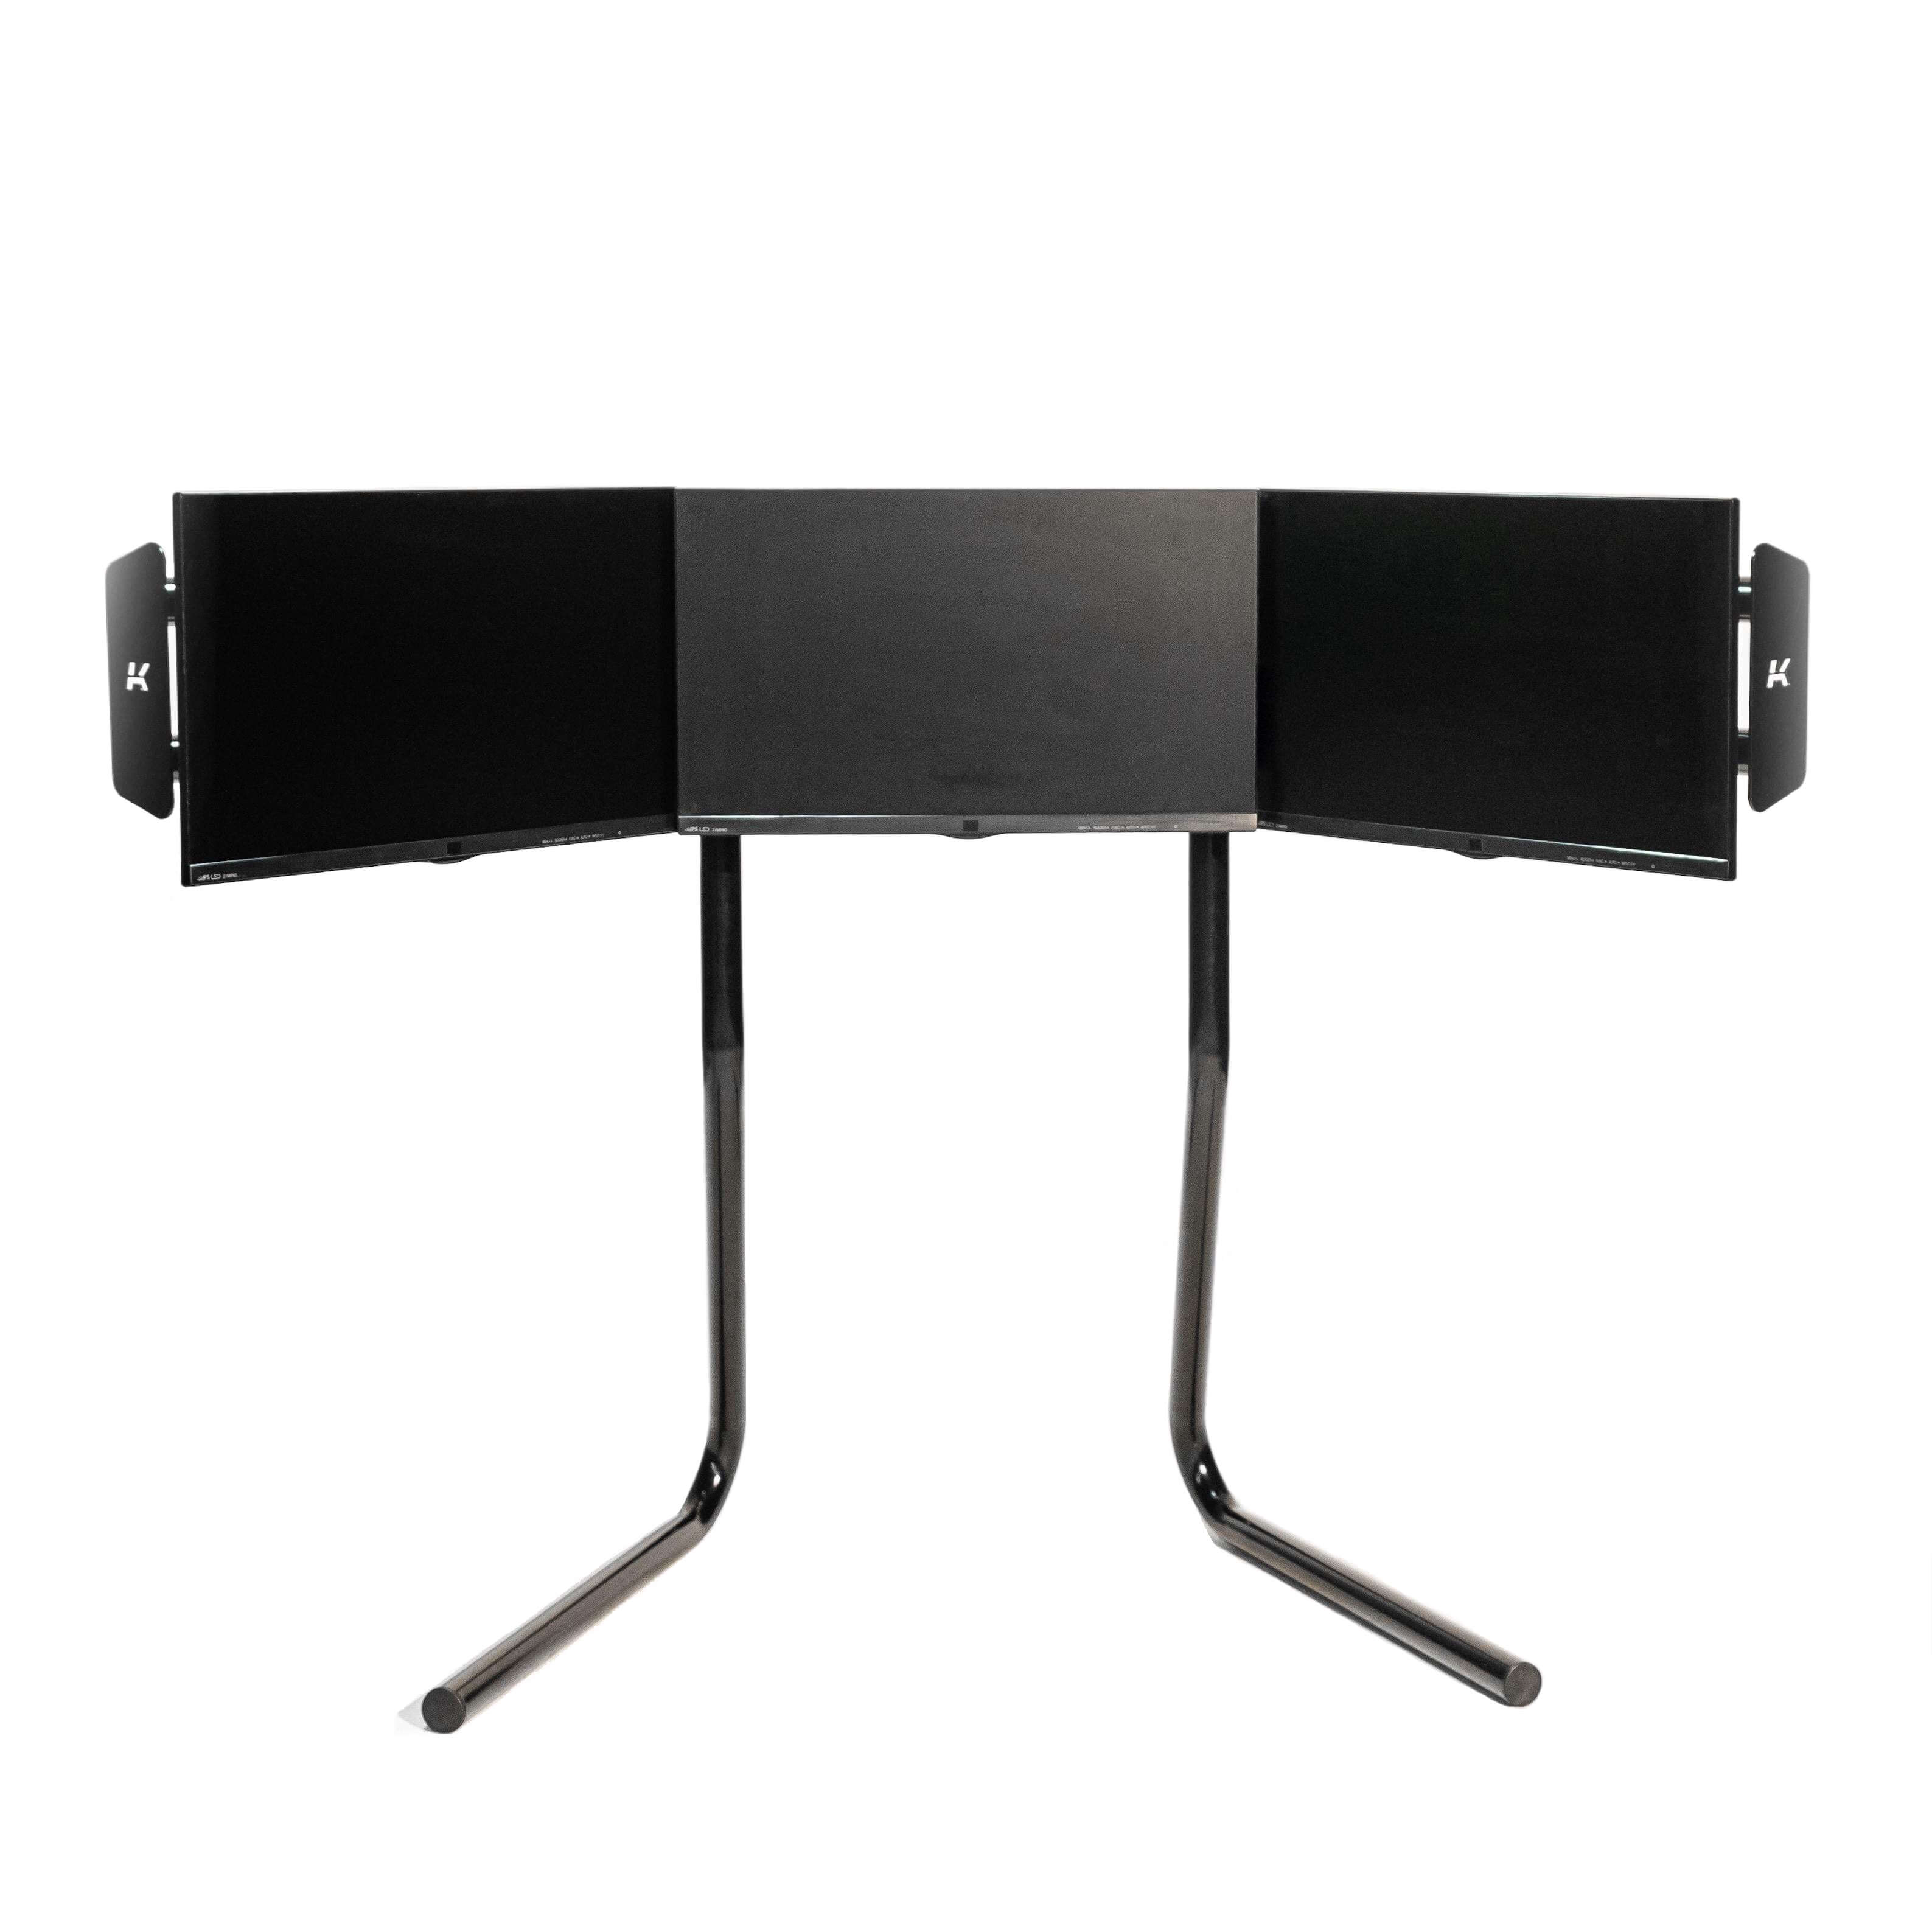 KLENEK Racing Monitor/TV Stand